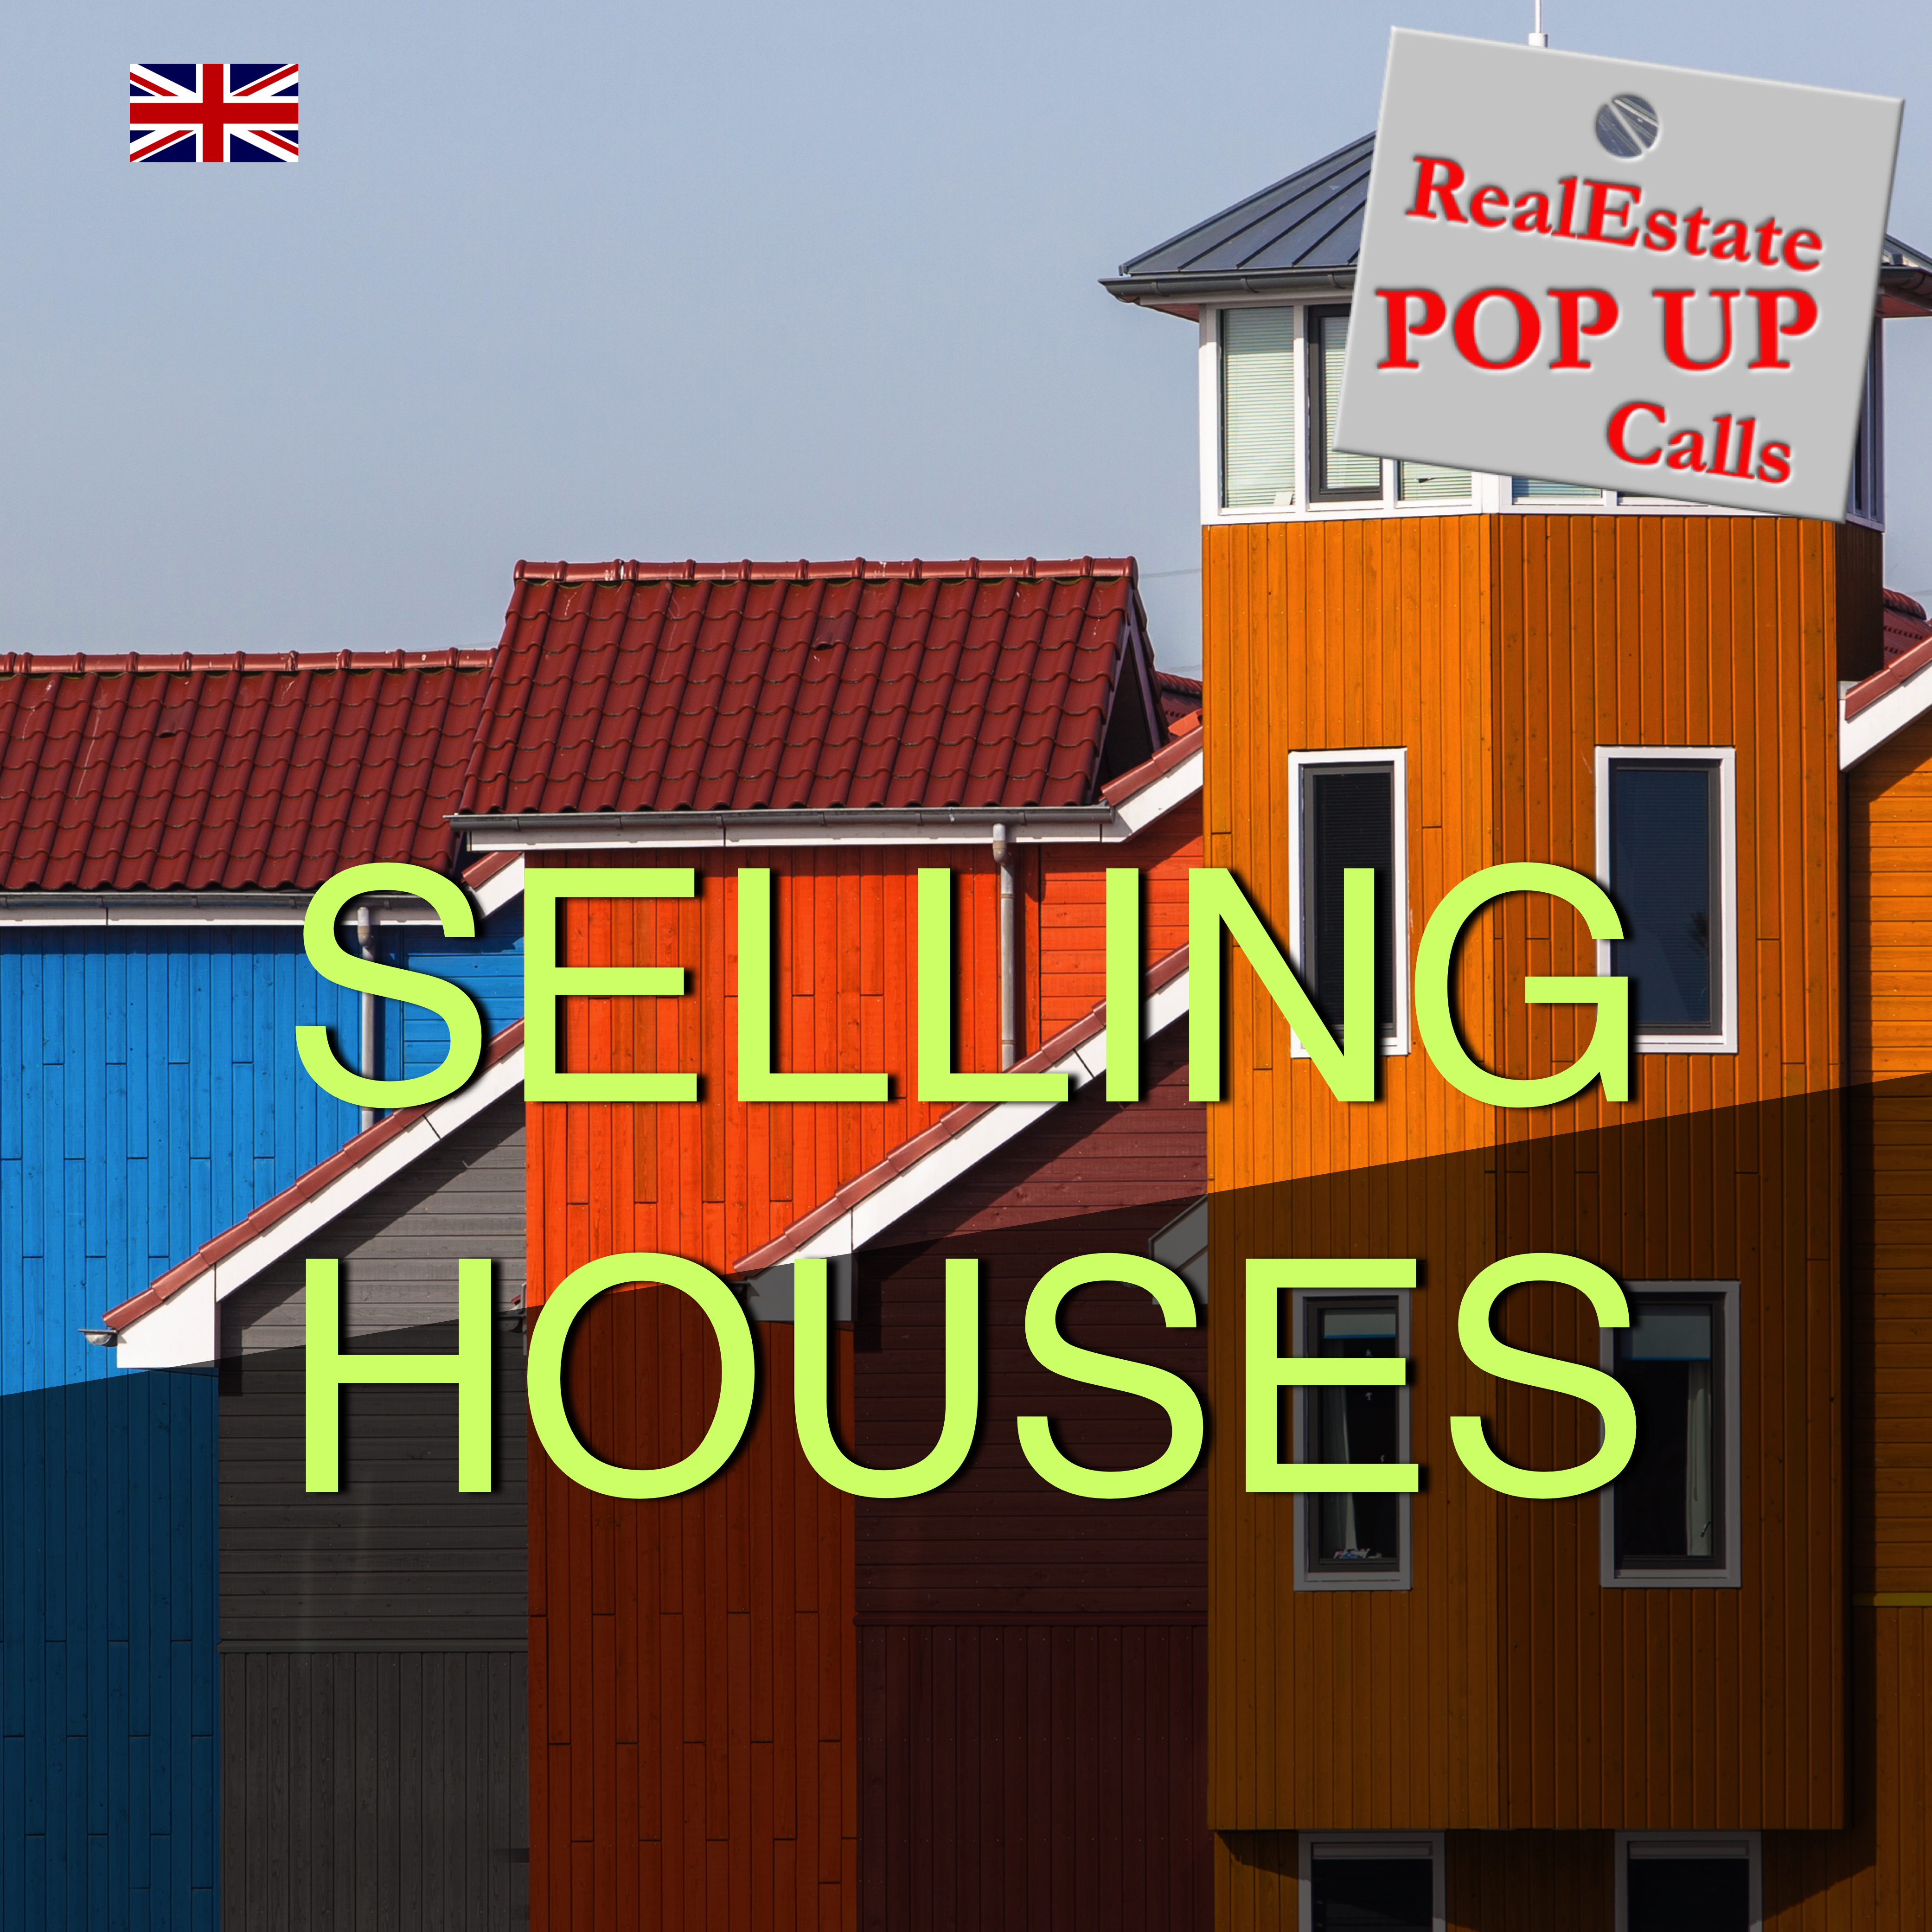 RealEstate POP UP Call - SELLING HOUSES - English 00034